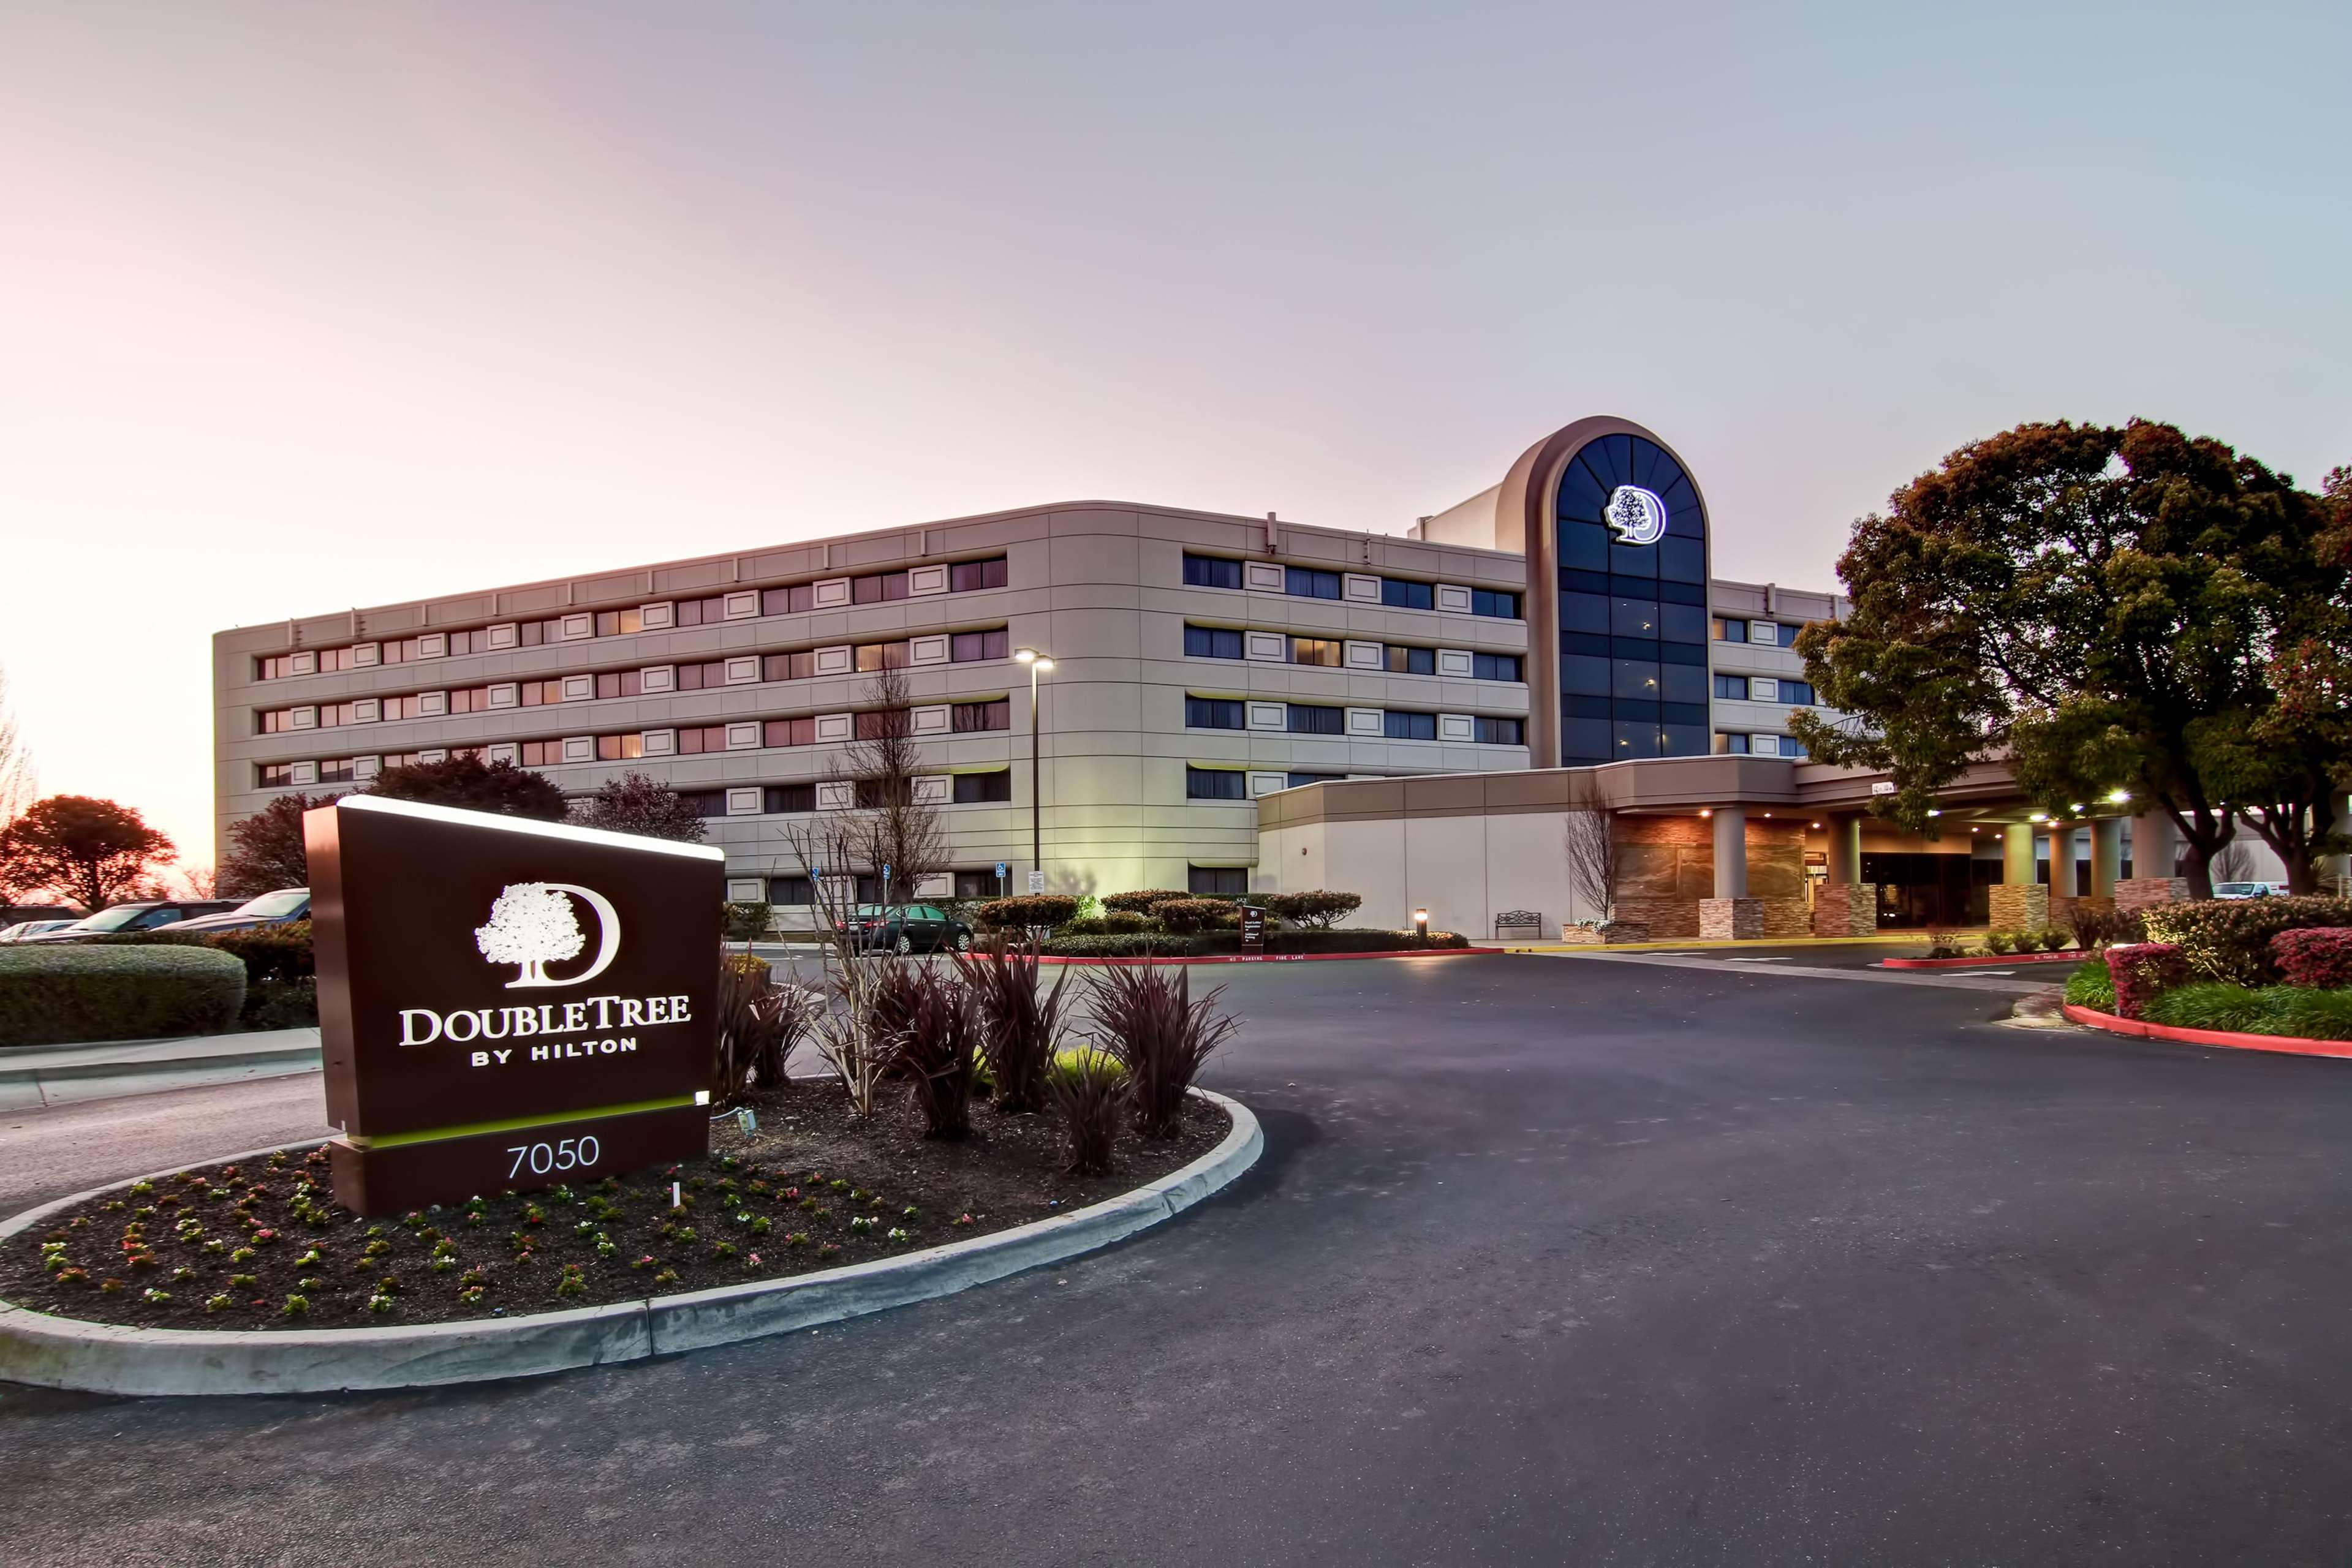 DoubleTree by Hilton Hotel Pleasanton at the Club image 0